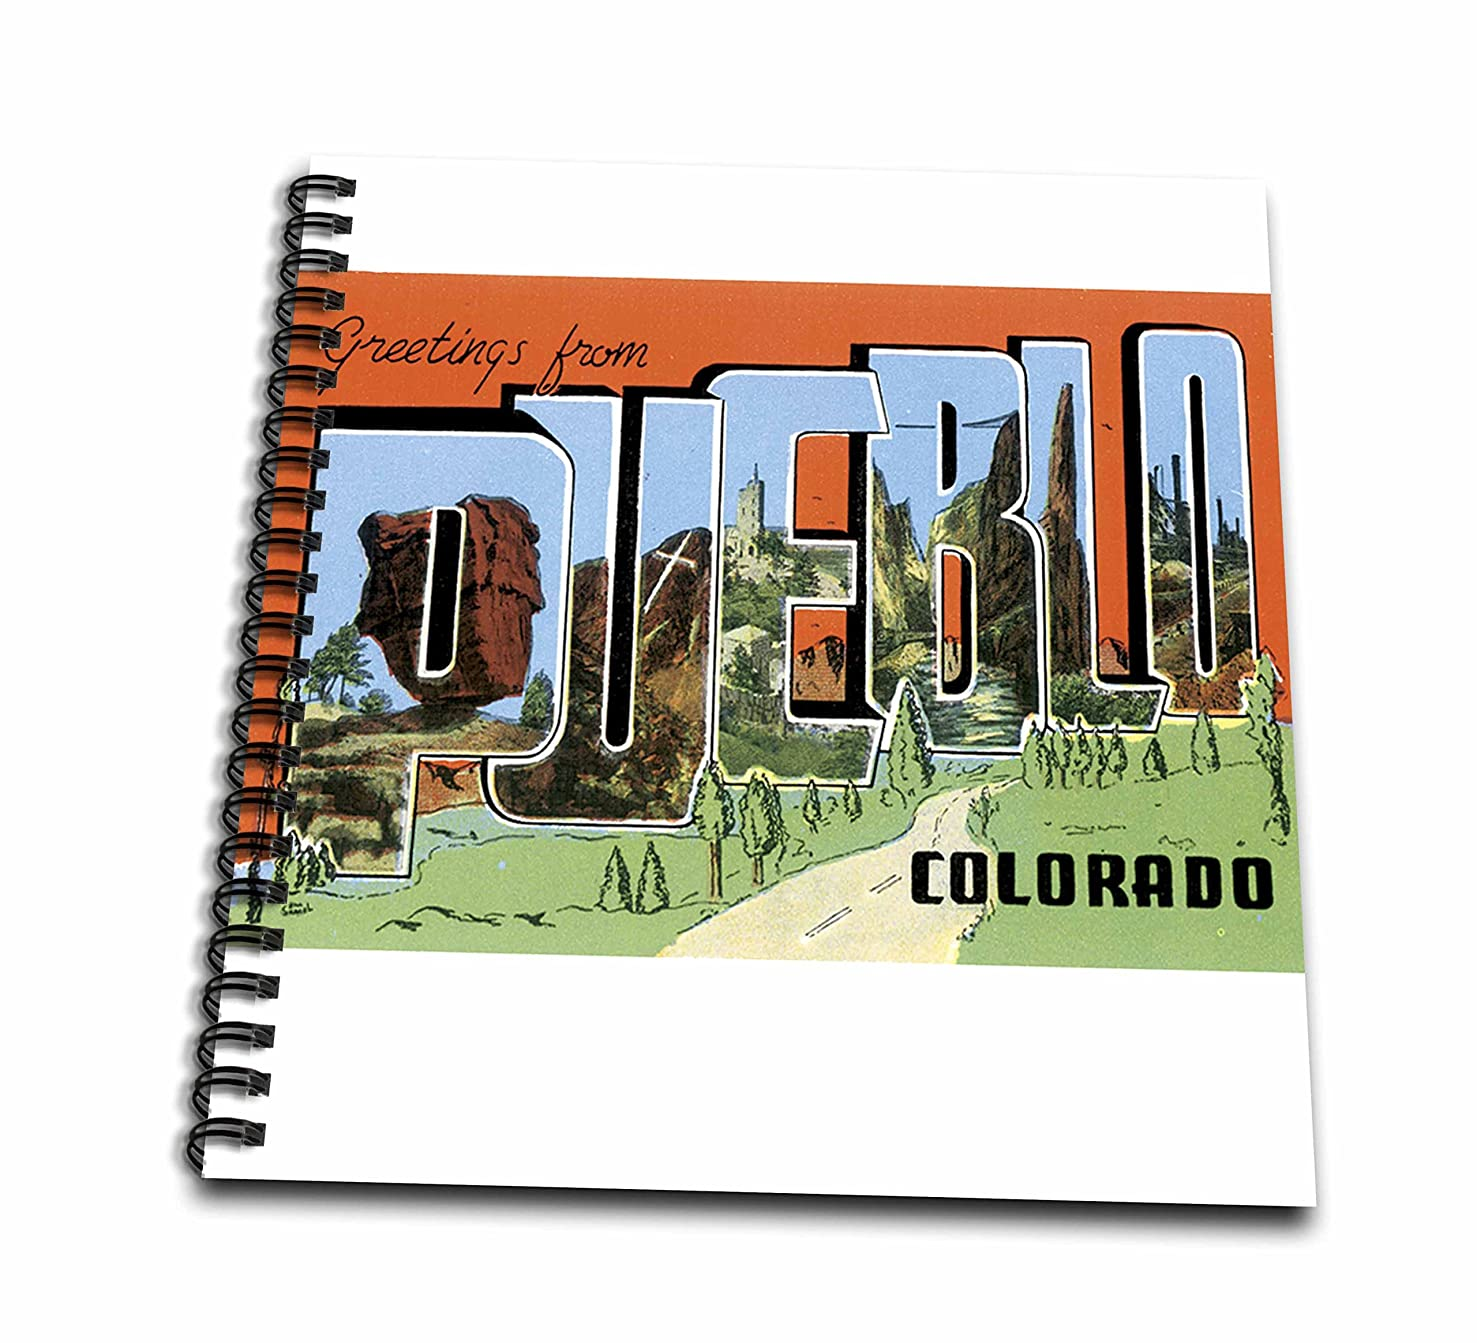 3dRose db_160734_1 Greetings From Pueblo Colorado with Bold Letters and Scenes of Pueblo Drawing Book, 8 by 8-Inch